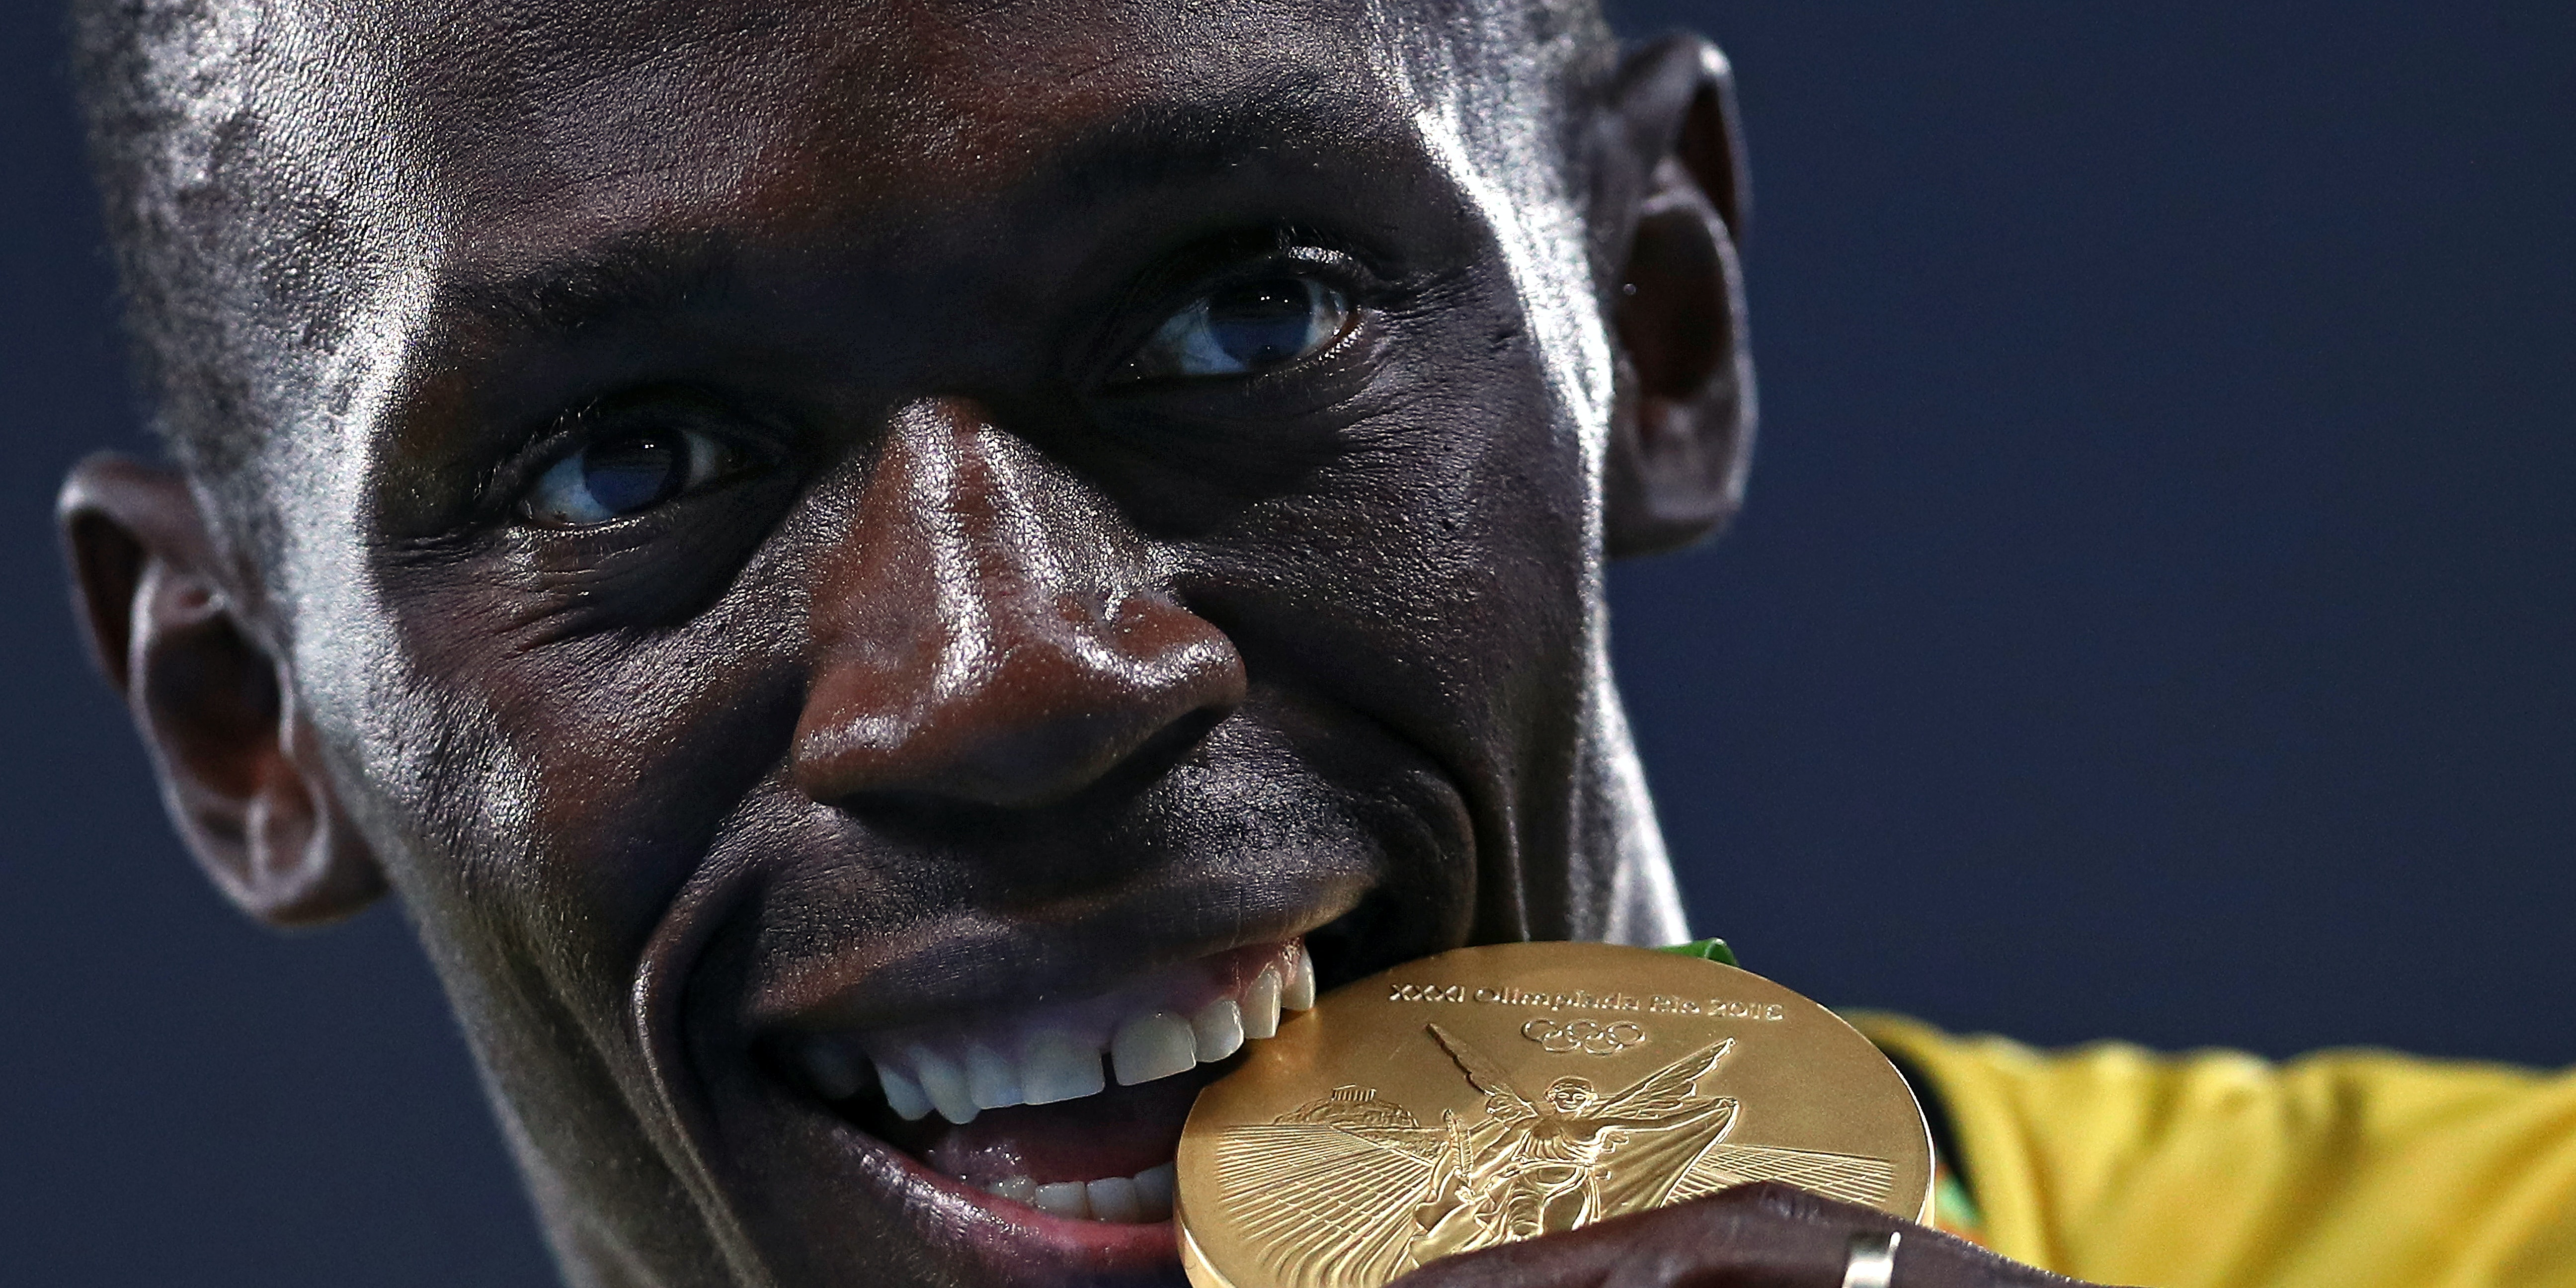 RIO DE JANEIRO, BRAZIL - AUGUST 20:  Gold medalist Usain Bolt of Jamaica bites his gold medal during the medal ceremony for the Men's 4 x 100 meter Relay on Day 15 of the Rio 2016 Olympic Games at the Olympic Stadium on August 20, 2016 in Rio de Janeiro, Brazil. (Photo by Patrick Smith/Getty Images)